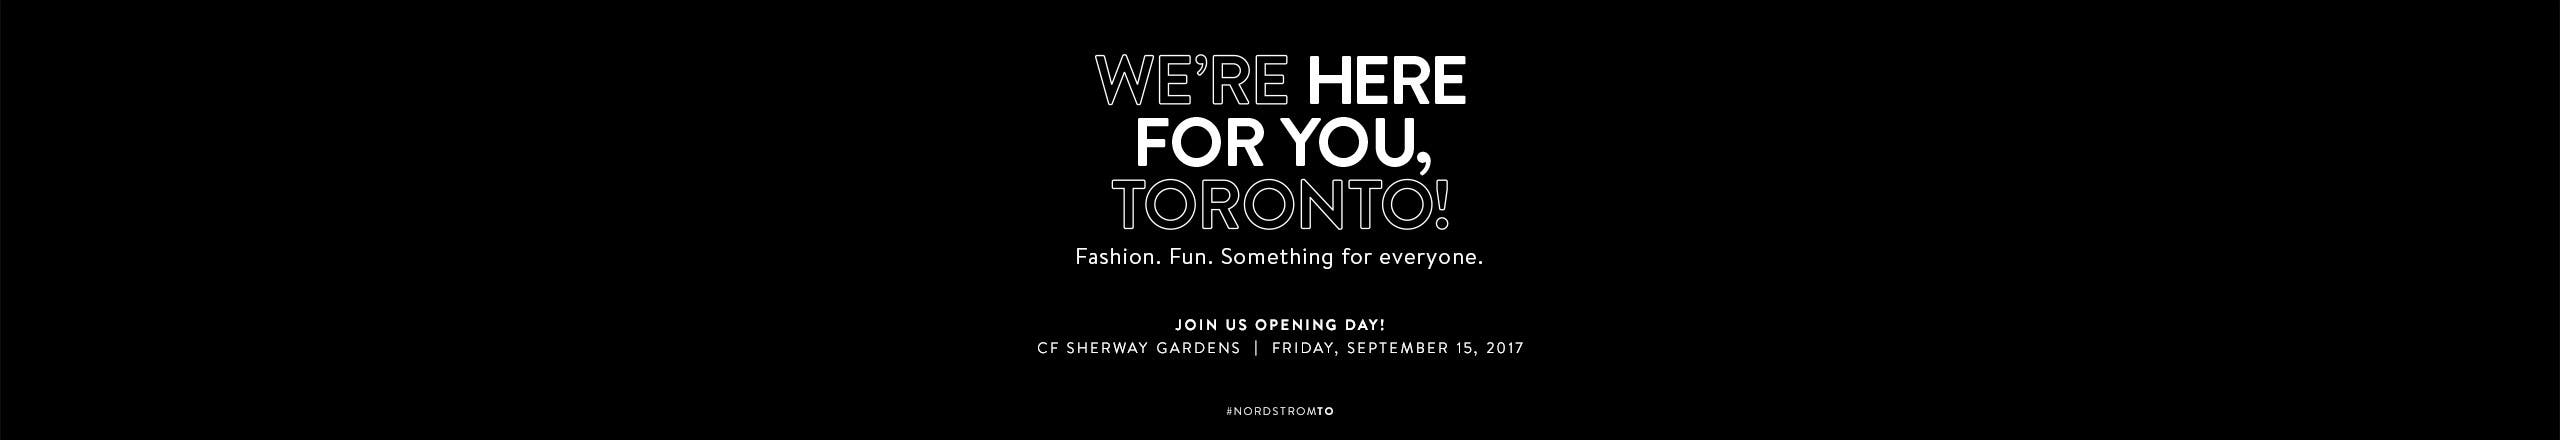 We're here for you, Toronto! Join us opening day at CF Sherway Gardens, Friday, September 15, 2017.